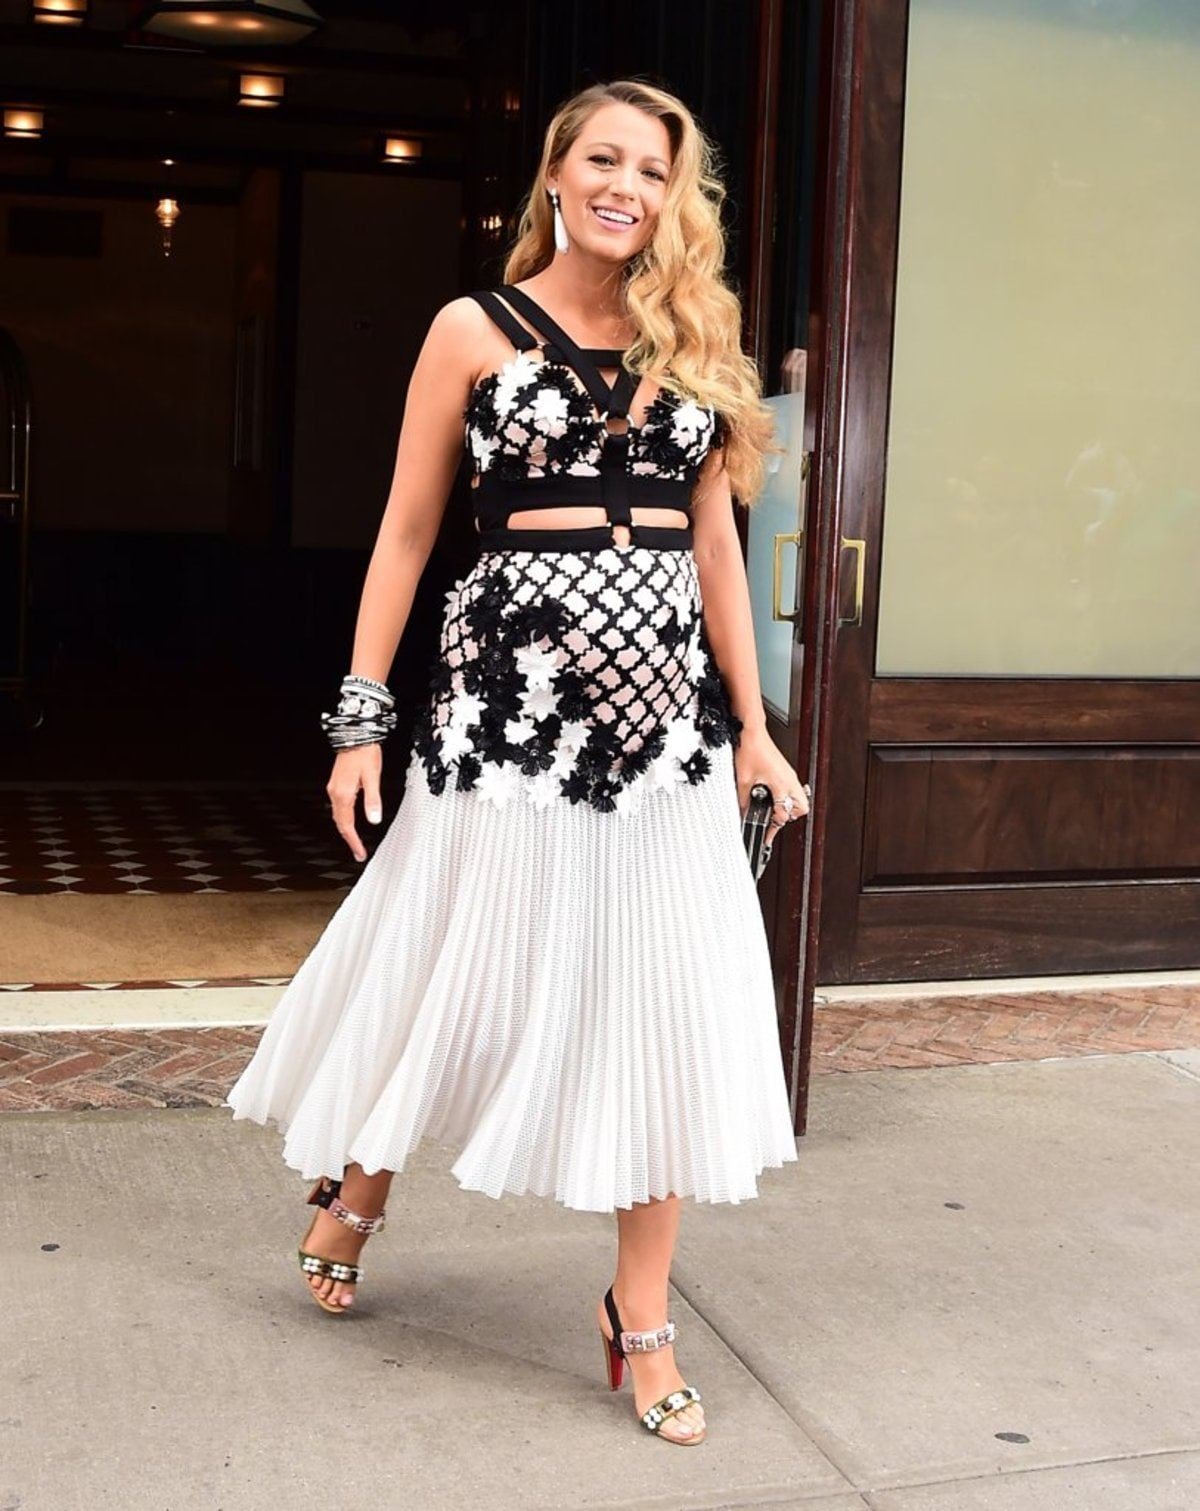 Blake-Lively-Wearing-Cutout-Dress